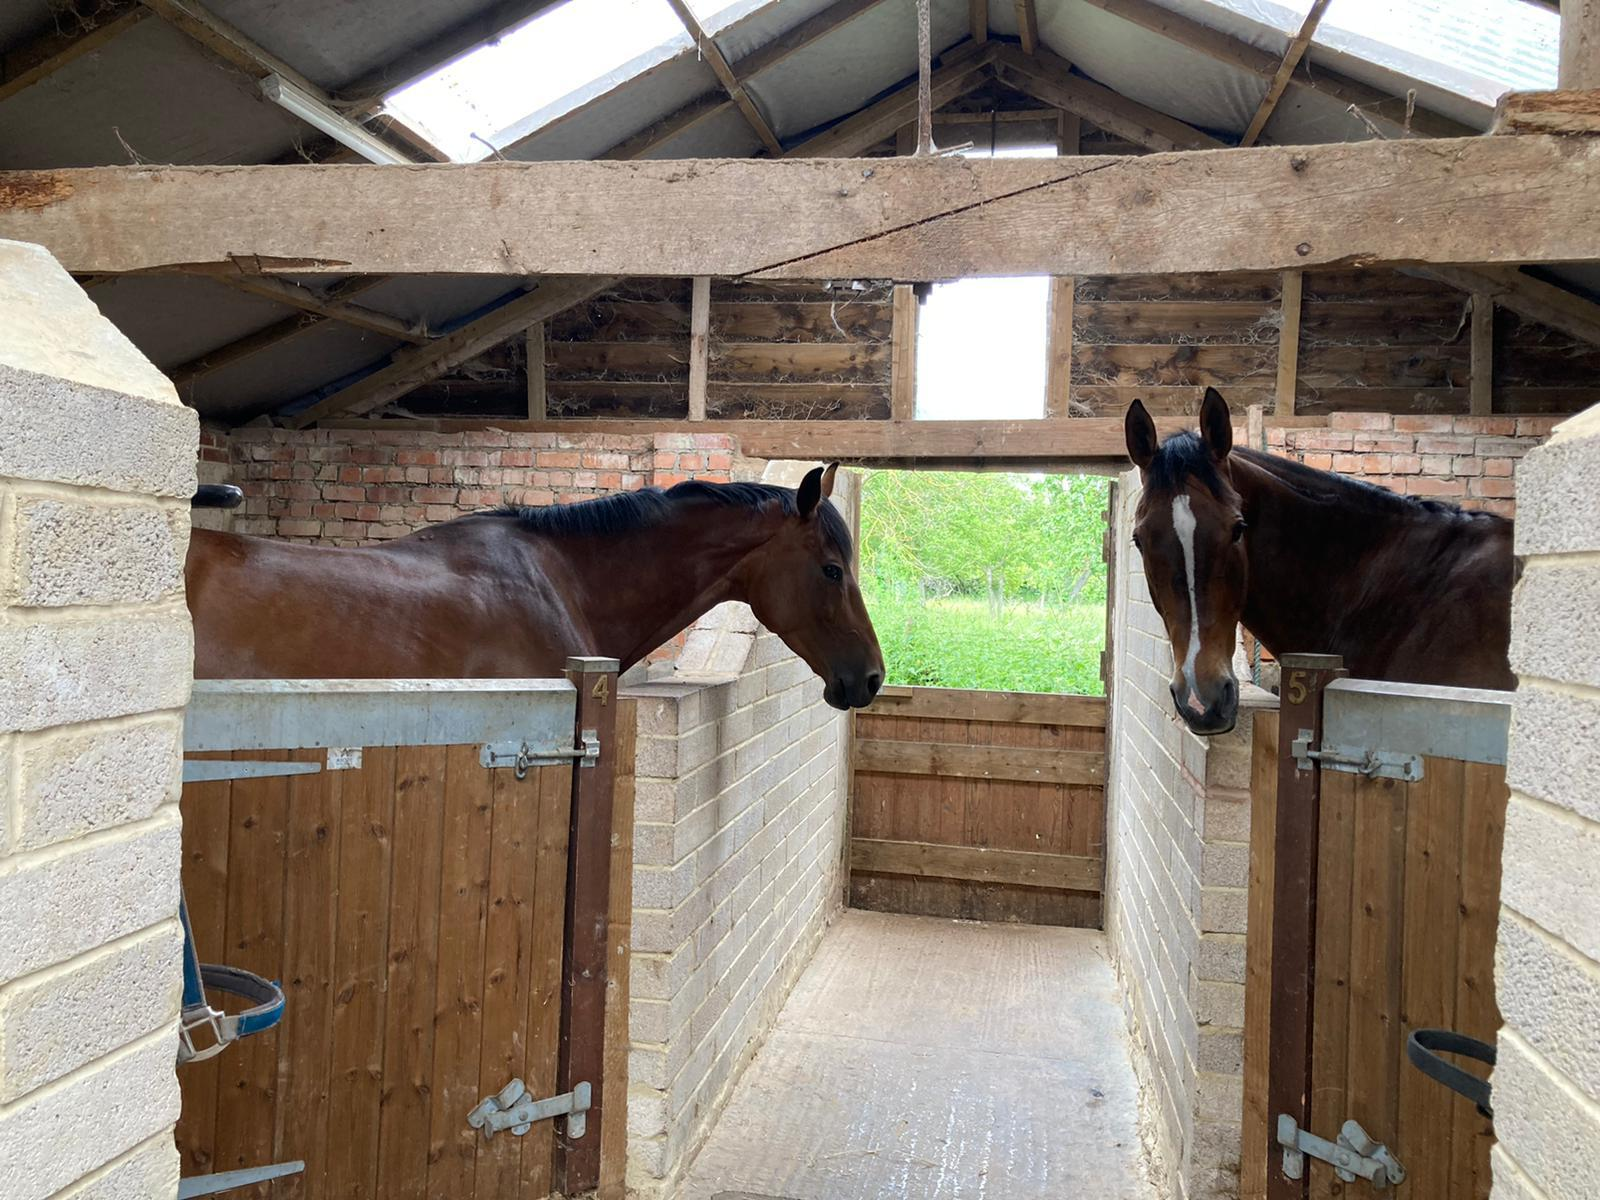 The stables at Gamage Court, home of Jonty Evans